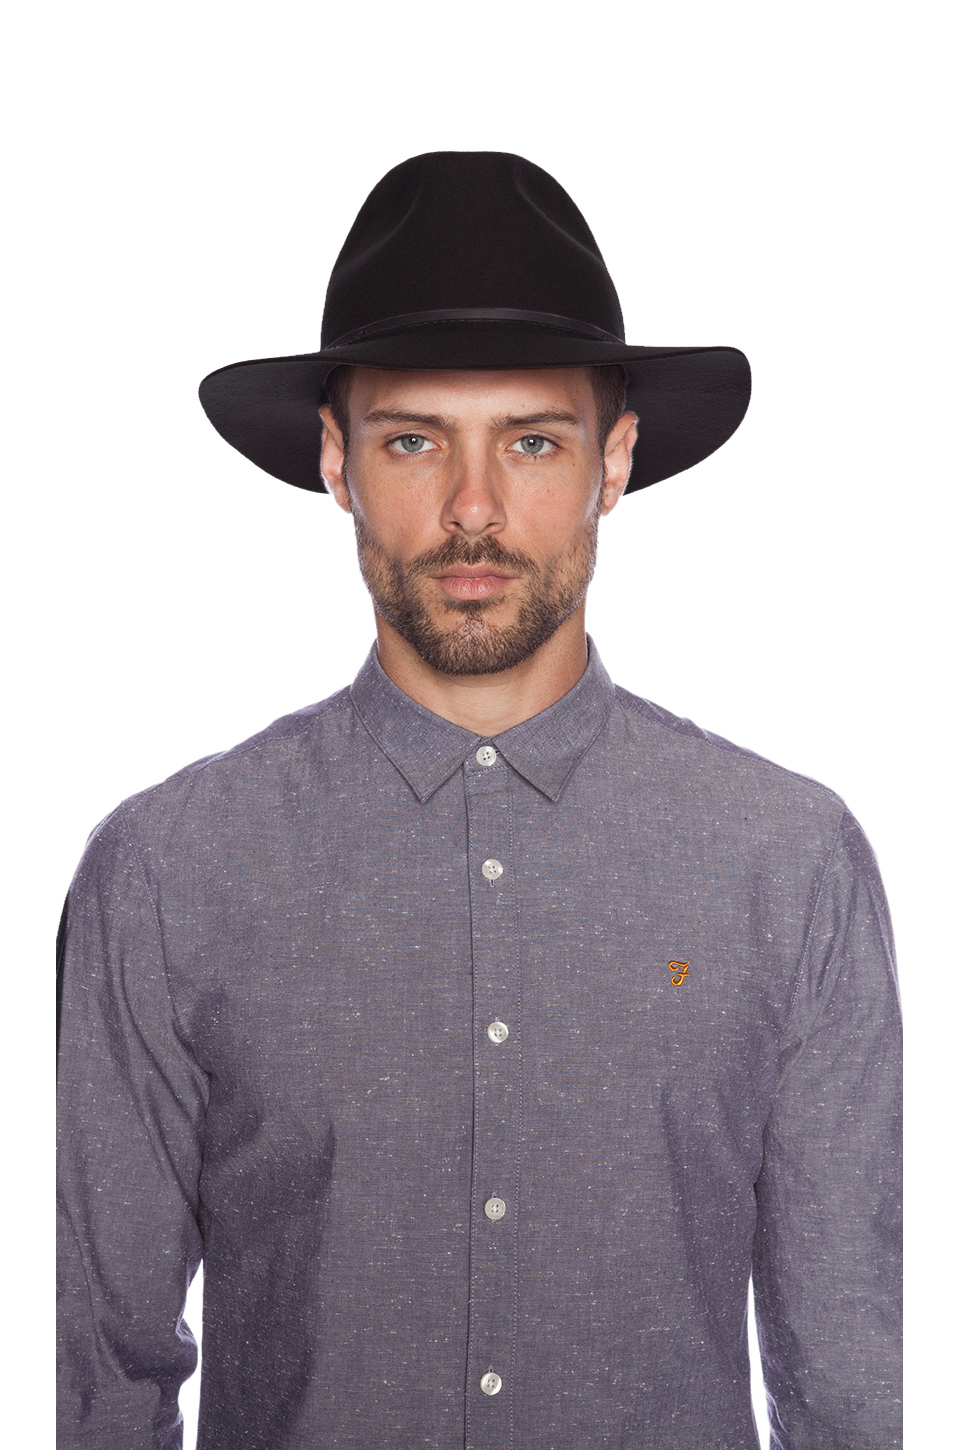 fedora hindu single men Shop from our premium selection of fedora hats for men & women look stylish & smart with our authentic fedoras.